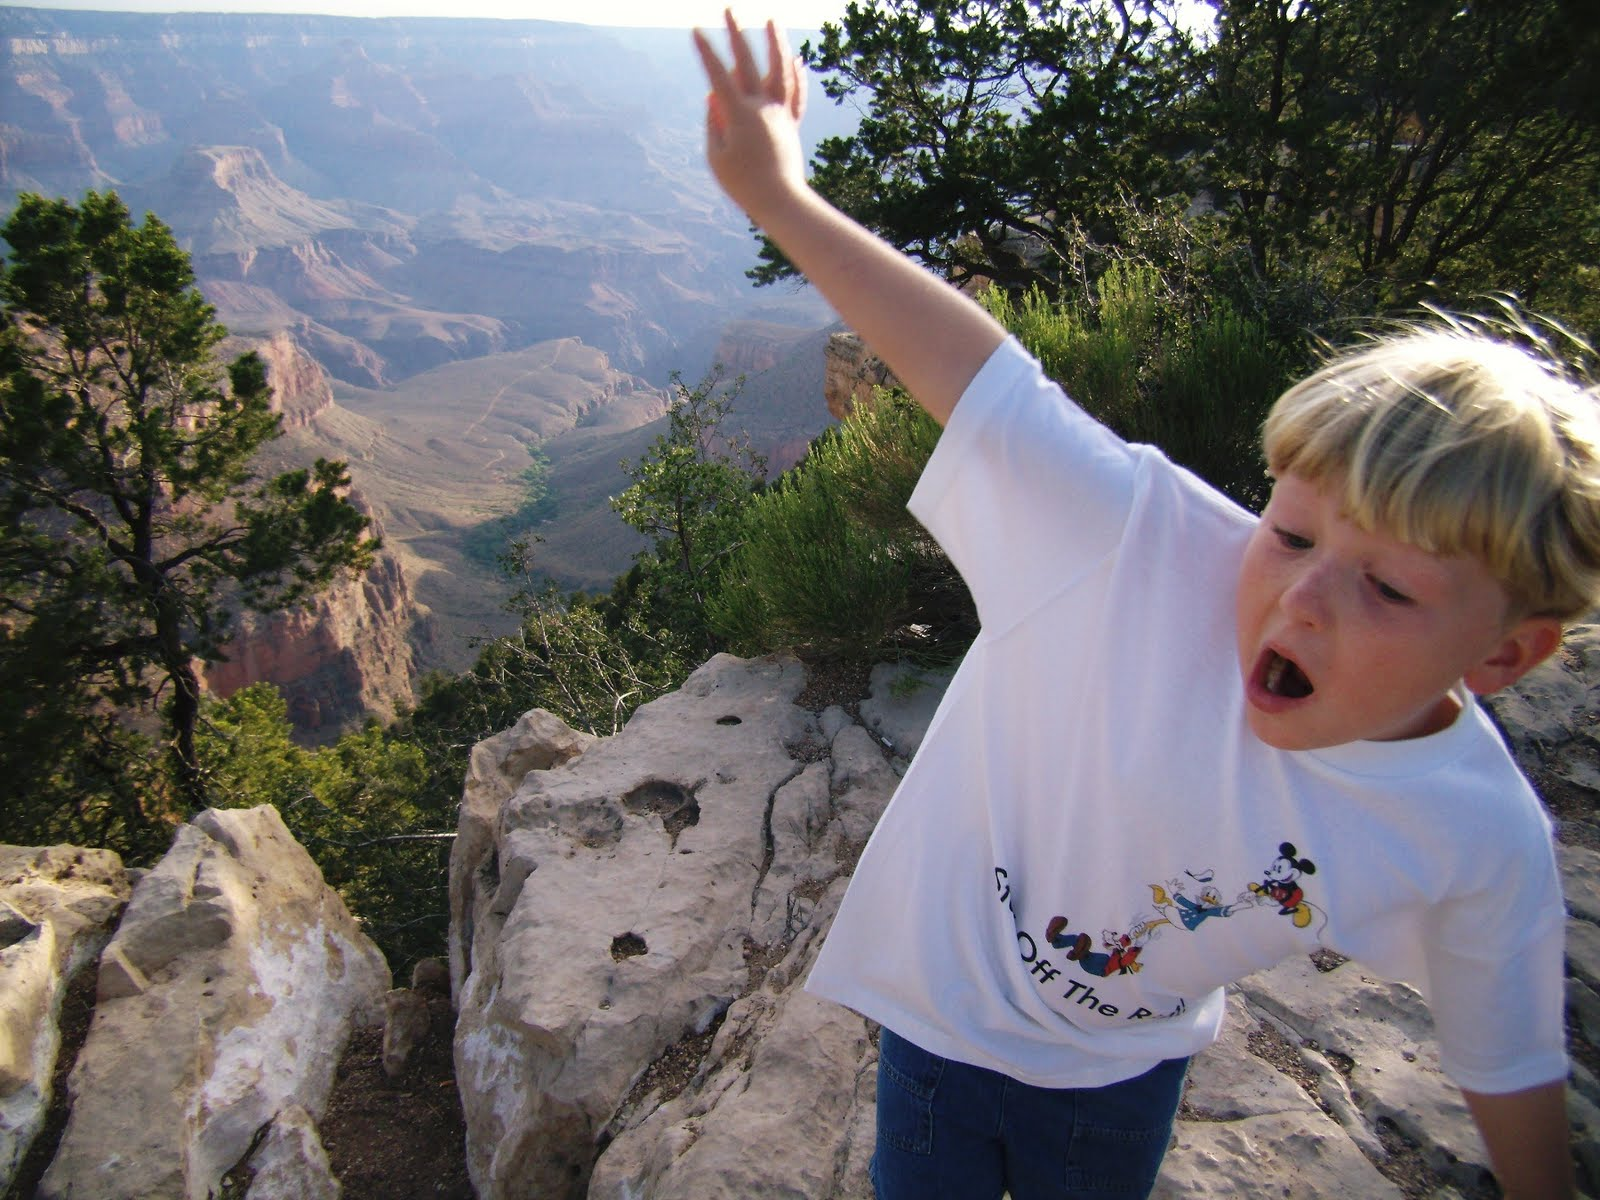 Adventures%2Bby%2BDisney%2B(3) 0073 Dear EarthTalk: Are plans to mine uranium near the Grand Canyon, as proposed ...